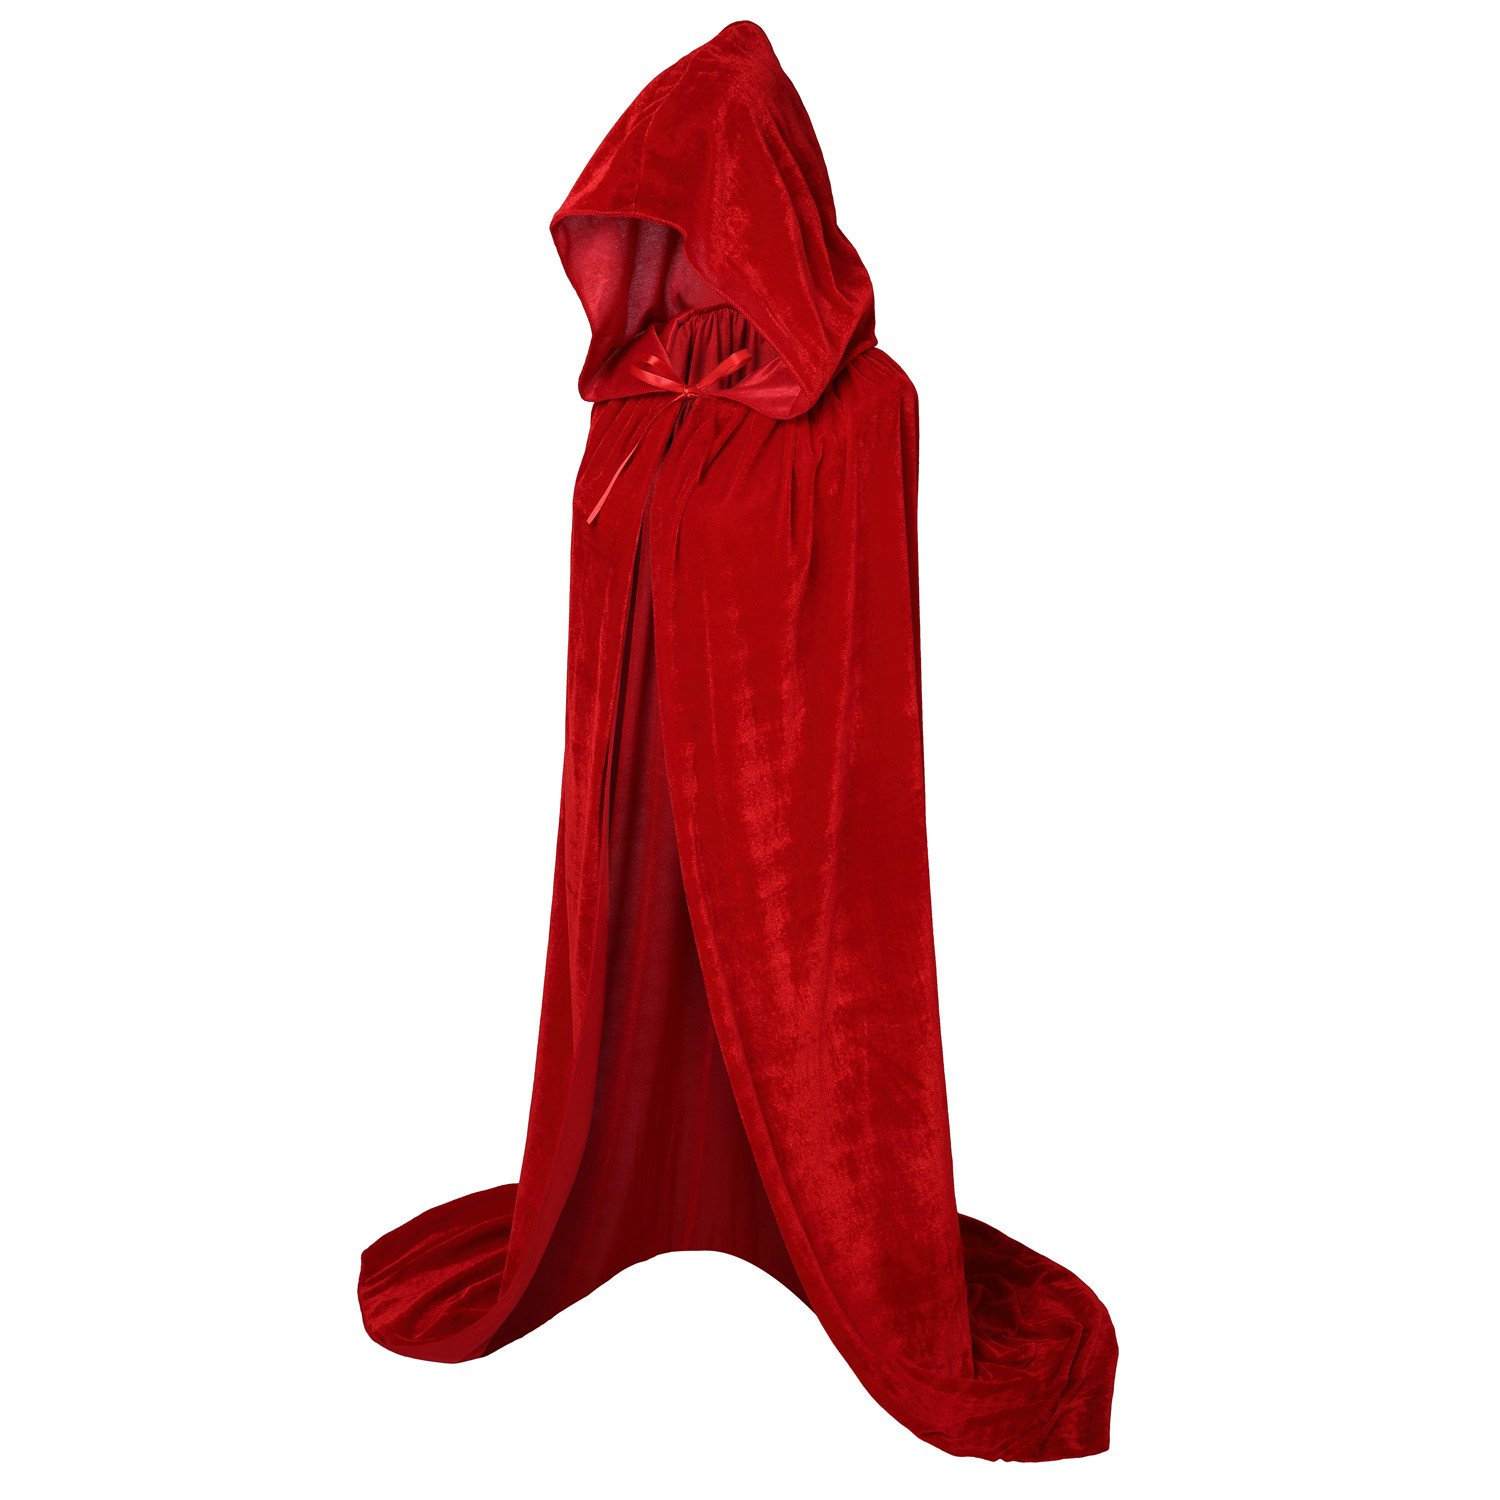 VGLOOK Hooded Cloak Long Velvet Cape for Christmas Halloween Cosplay Costumes 59inch